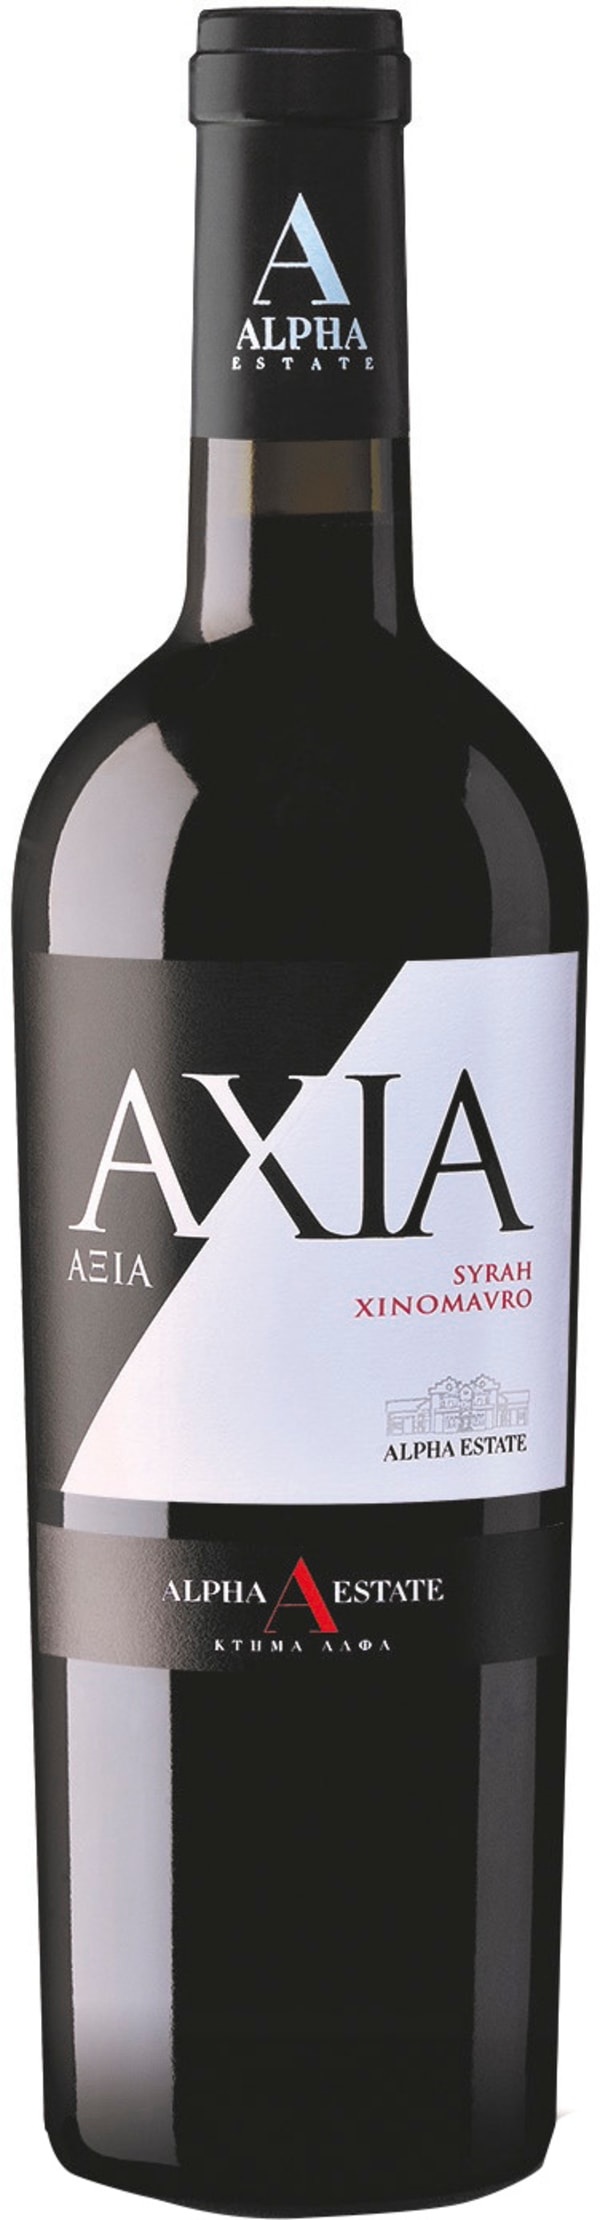 Alpha Estate Axia Syrah Xinomavro 2015